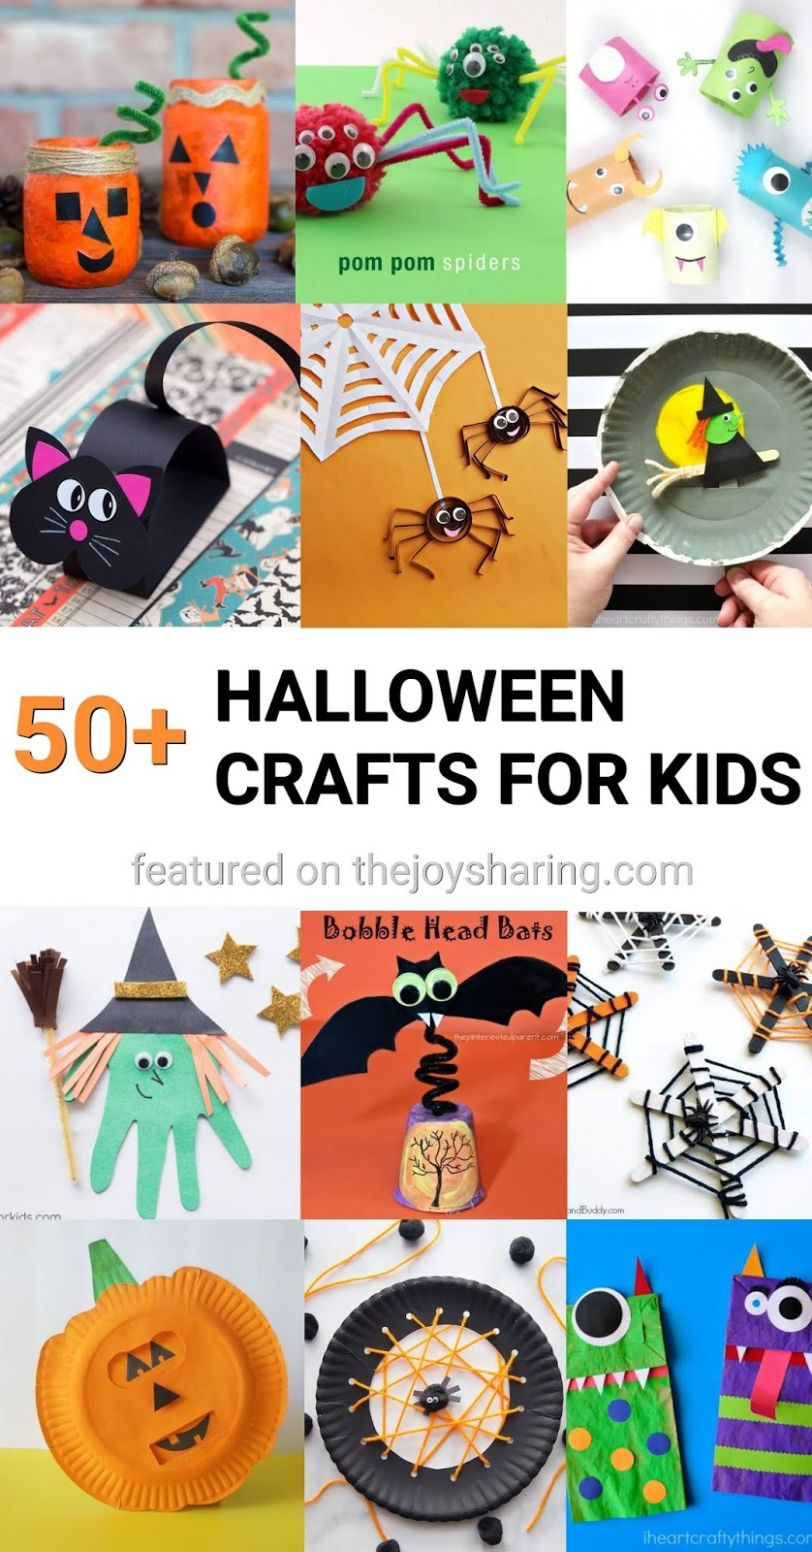 9+ Halloween Crafts for Kids - The Joy of Sharing